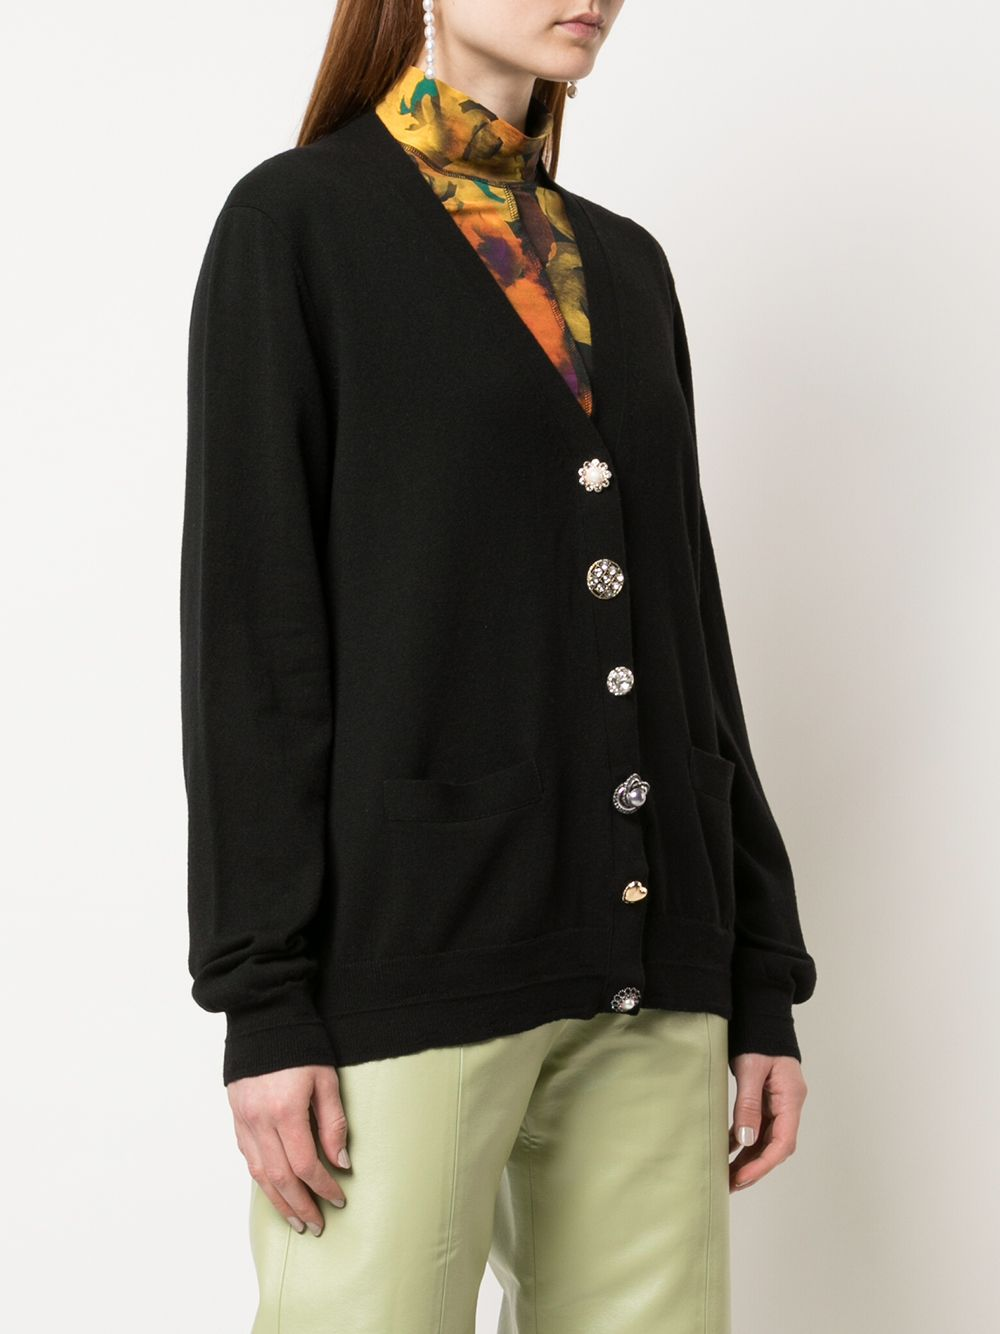 MARC JACOBS WOMEN THE JEWELLED BUTTON CARDIGAN